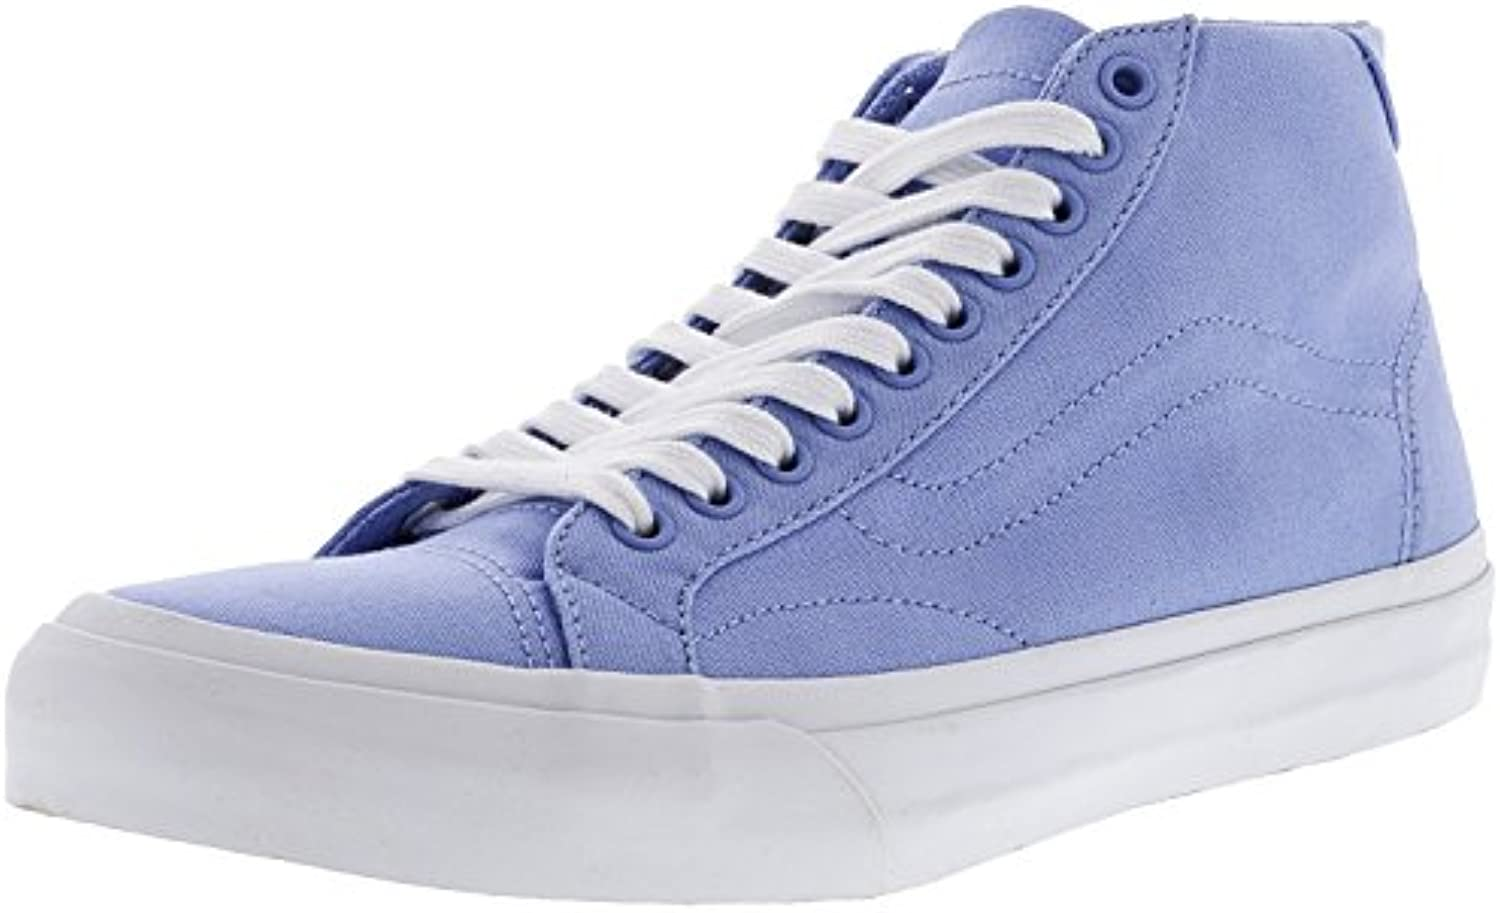 Vans Hombres Court Mid Leinen Fashion Sneakers